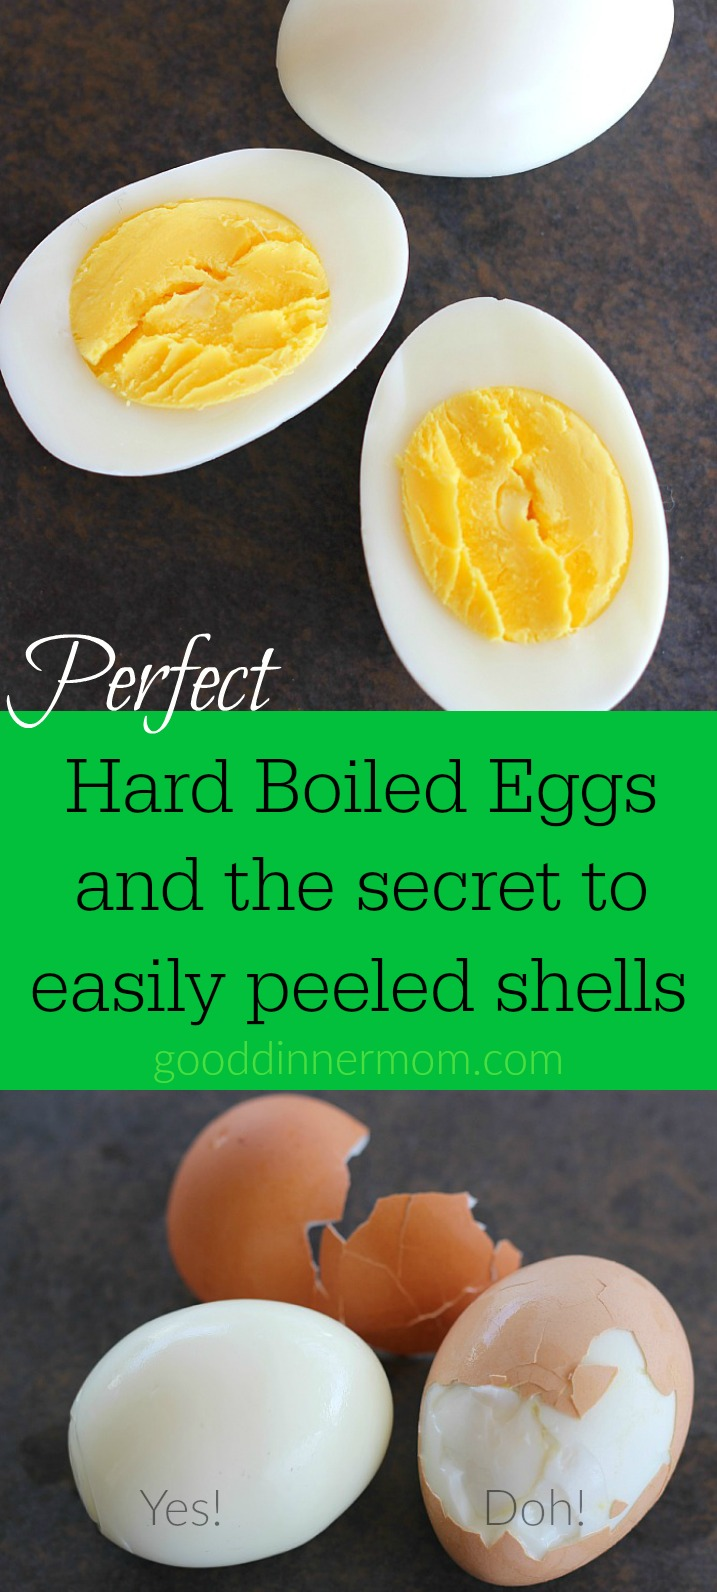 Simple and perfect hard boiled eggs with shells that practically slide right off! #hardboiledeggs #recipes #perfecthardboiledeggs #deviledeggs